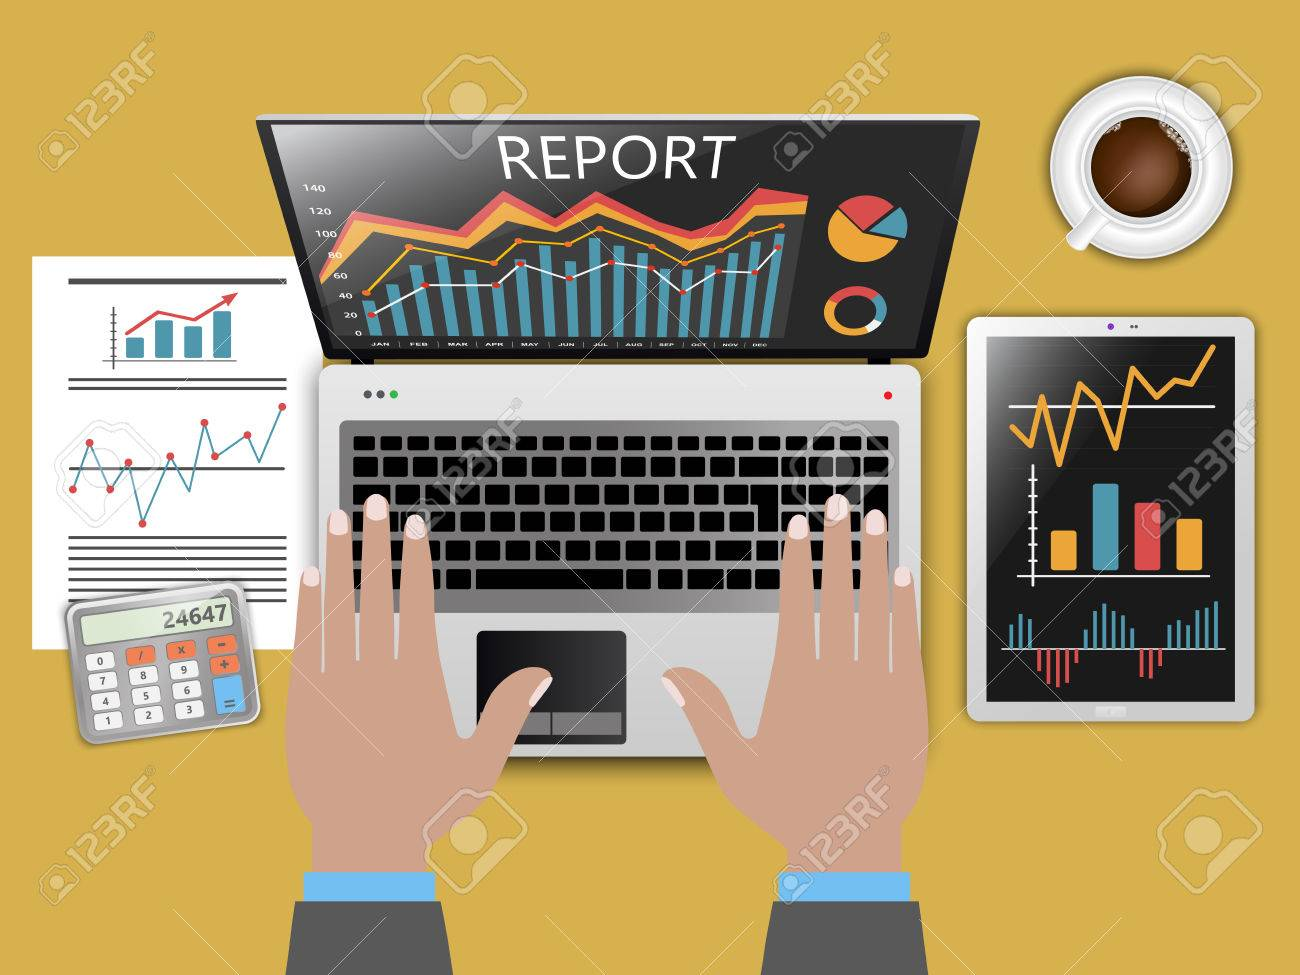 Status report in business, financial theme - 43463348